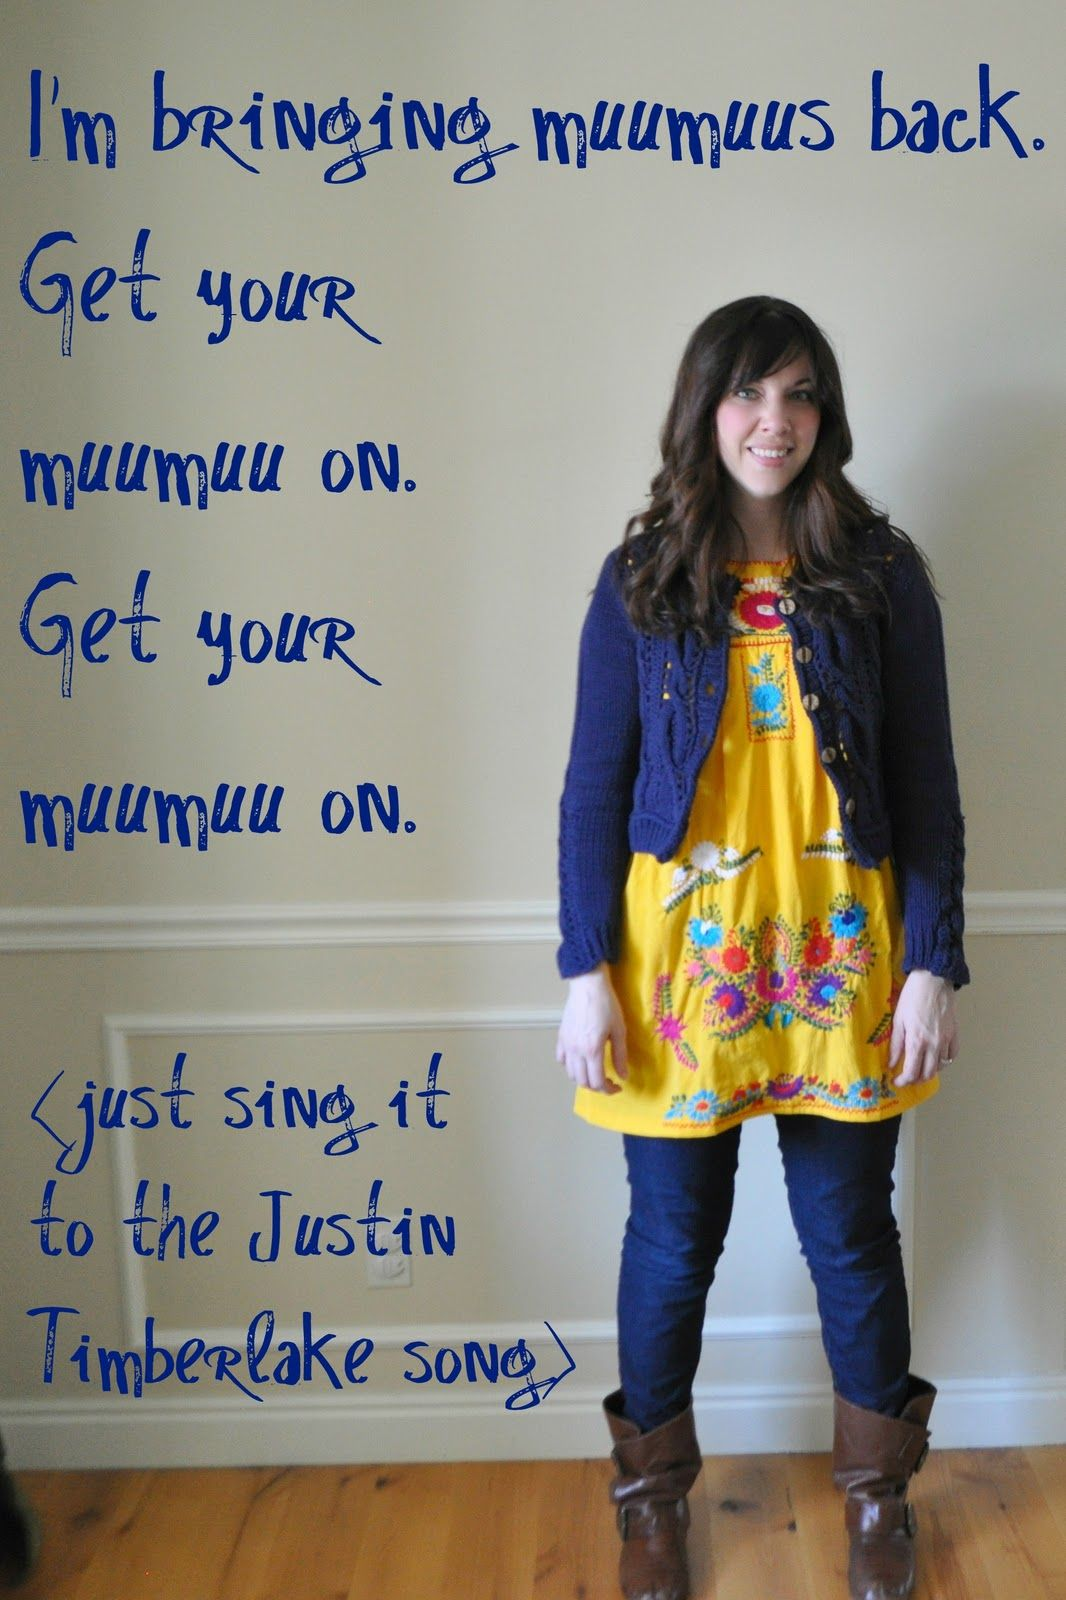 I Am Momma - Hear Me Roar: Refashionista - I\'m bringing muumuus back ...